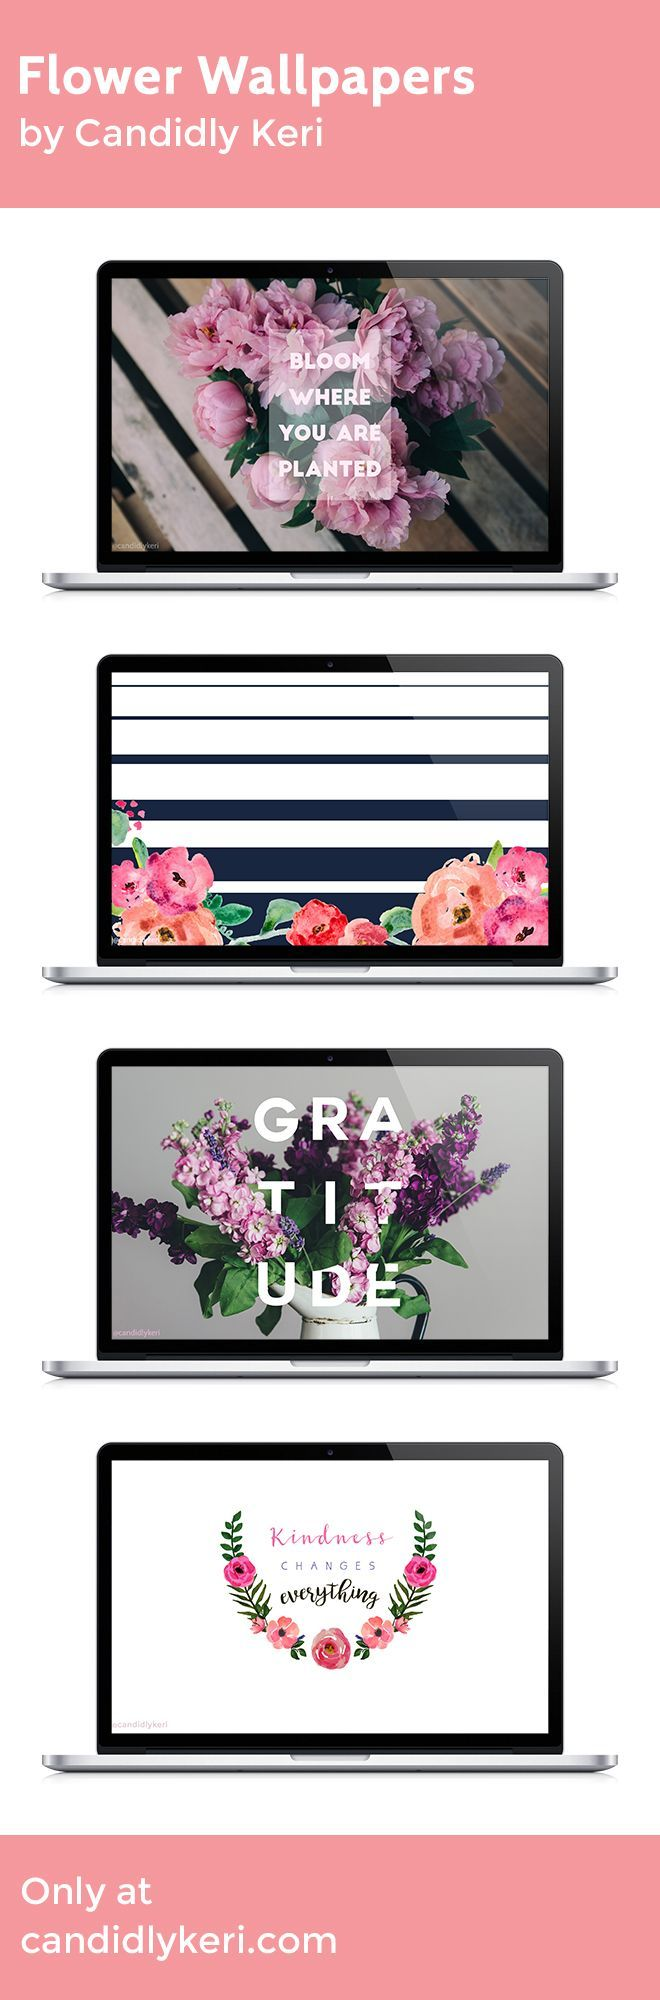 Flower quotes simple graduated stripes watercolor bloom where you're planted  Kindness changes everything wallpaper you can download for free on the blog! For any device; mobile, desktop, iphone, android!